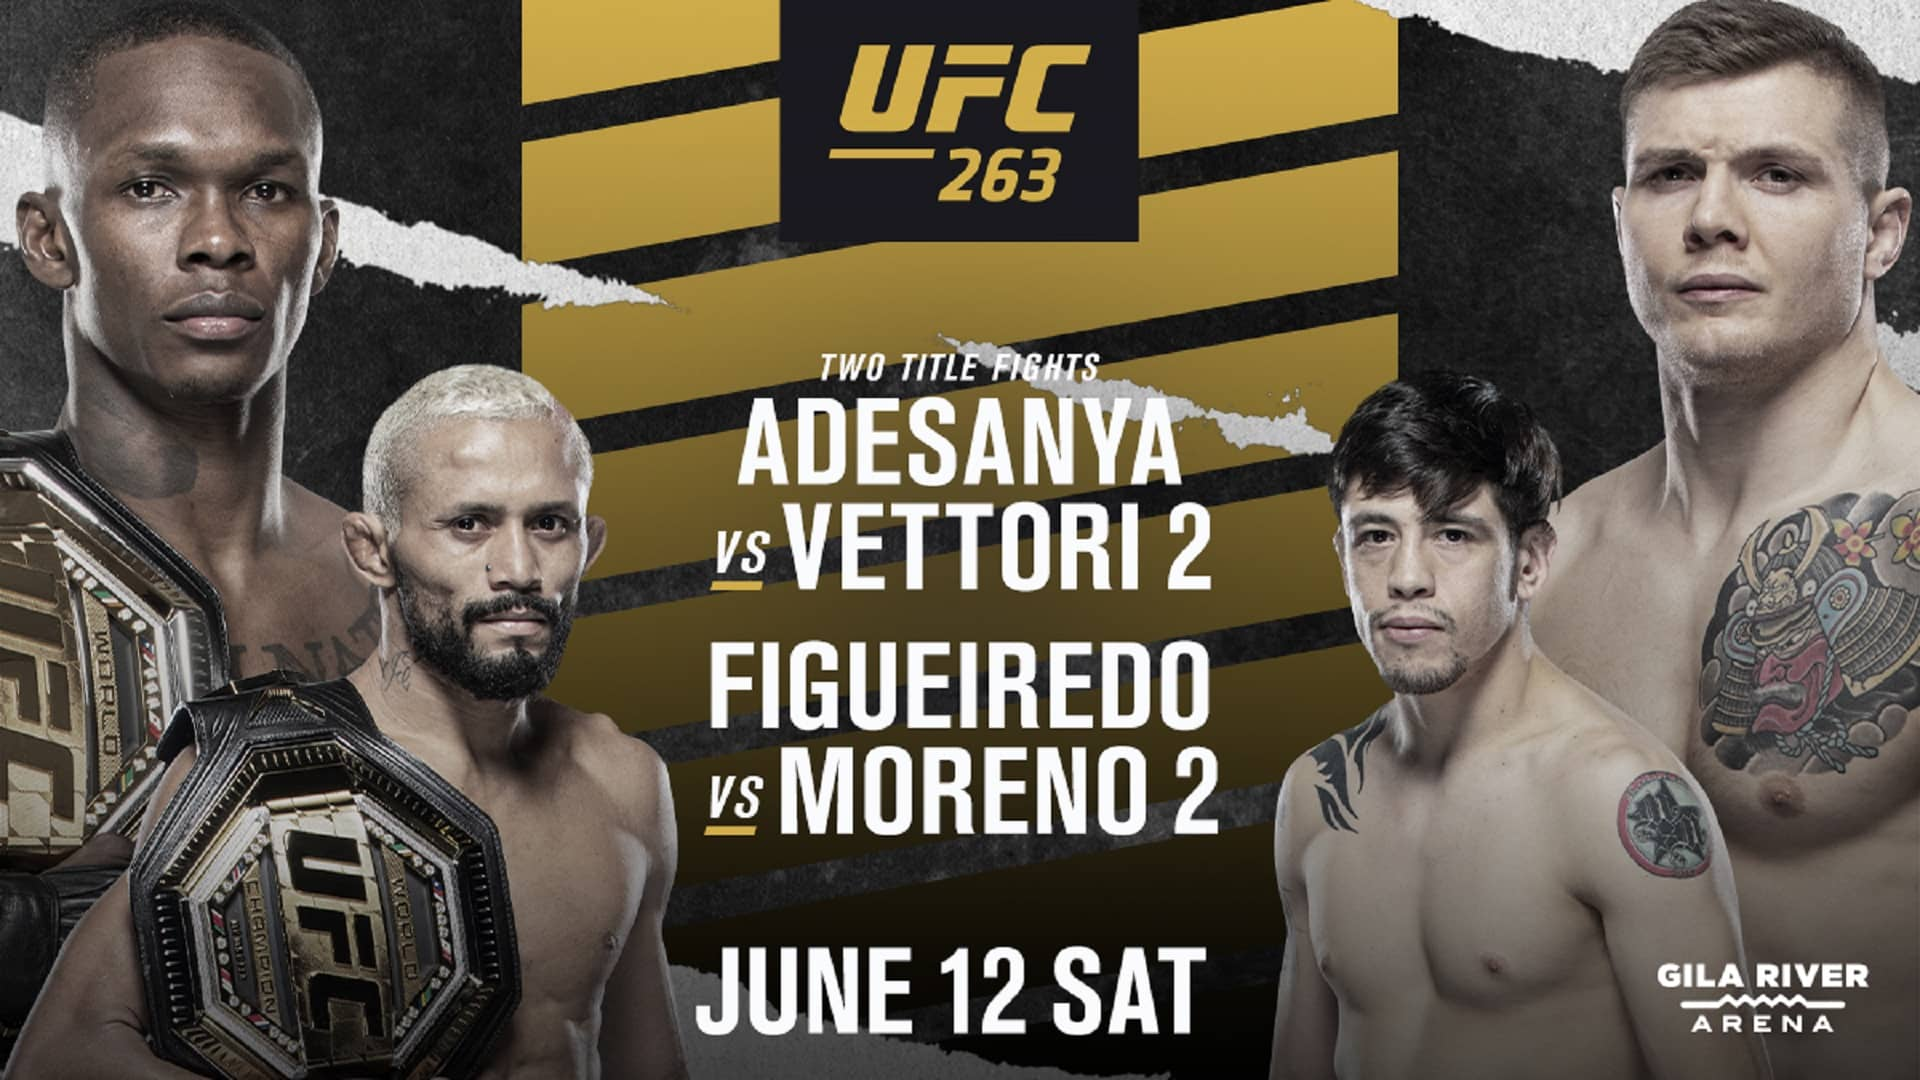 UFC 263: Adesanya vs. Vettori: Everything you need to know about the event